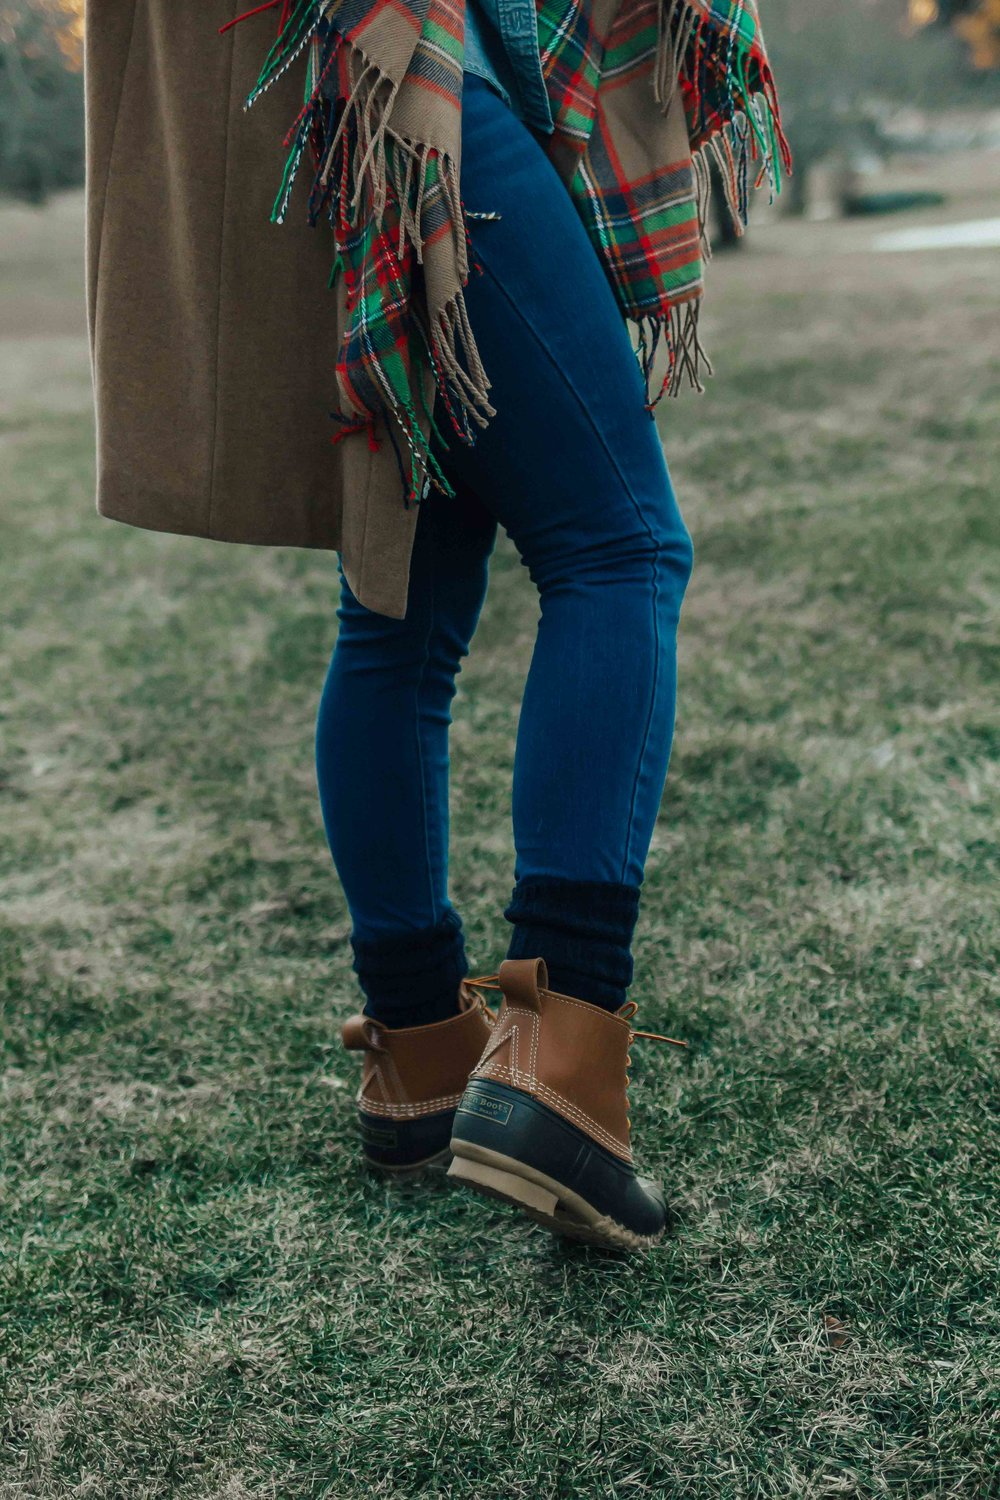 Bean Boots Outfit – Bean Boots Outfit Winter – Bean Boots Outfit Rainy Days – Bean Boots Wool Socks – Bean Boots Leggings – Casual Winter Outfits – Winter Outfit Ideas – Casual Winter Outfits with Boots – Winter Outfit Ideas for Women – Casual Winter Outfits for Women #heartandseam #beanboots #casualwinterstyle  www.heartandseam.com